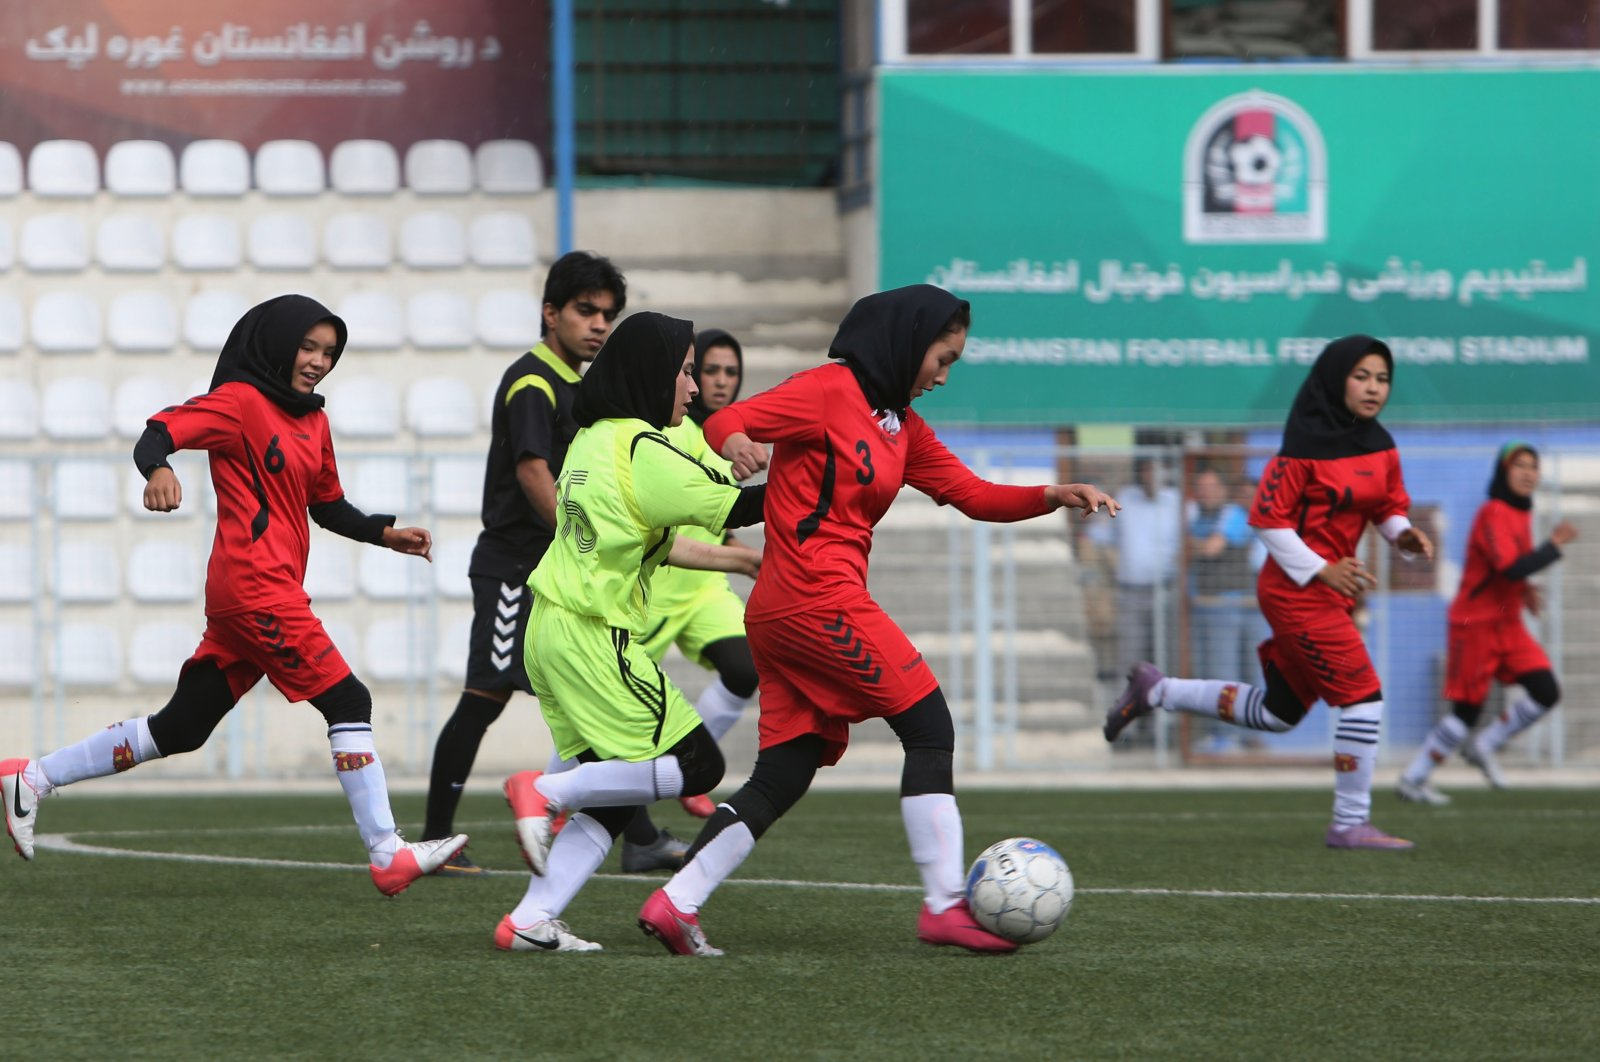 Afghan female footballers participate in a match to prepare for Afghanistan's first female football premier league, in Kabul, Afghanistan, June 2, 2014. (AP Photo)